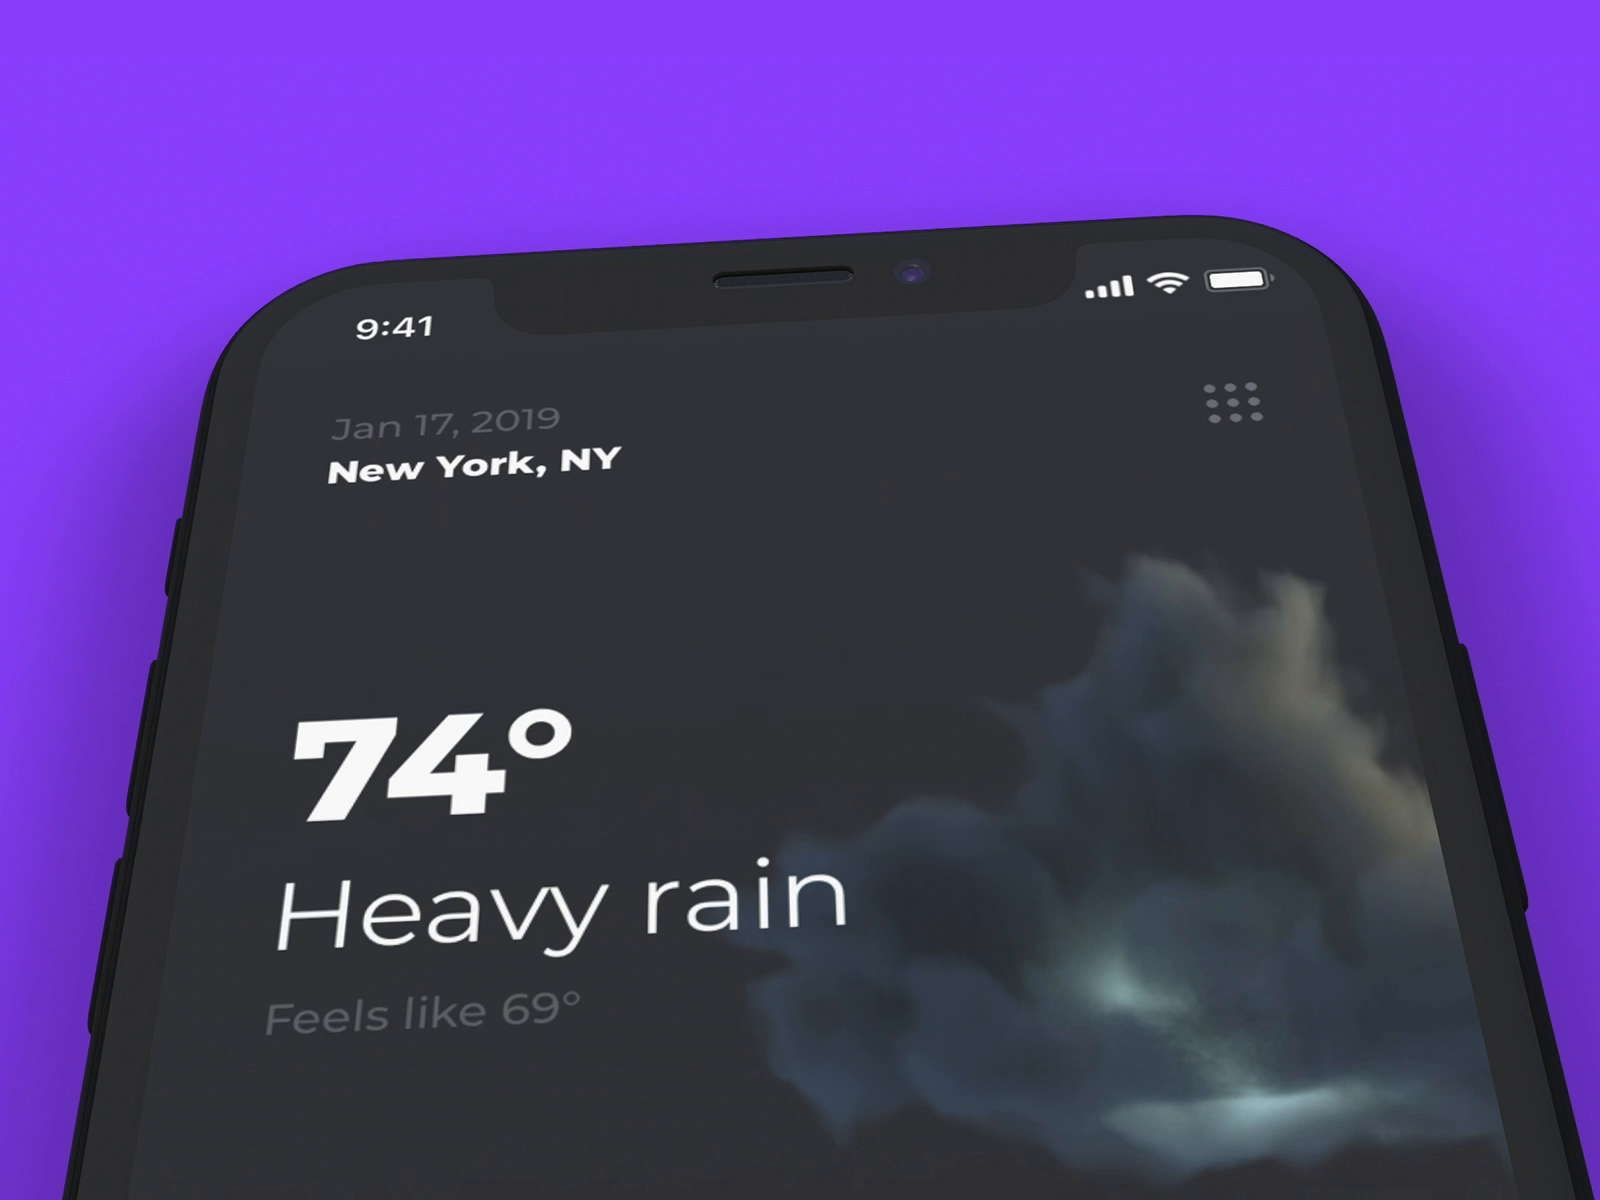 Weather dribbble 05 1